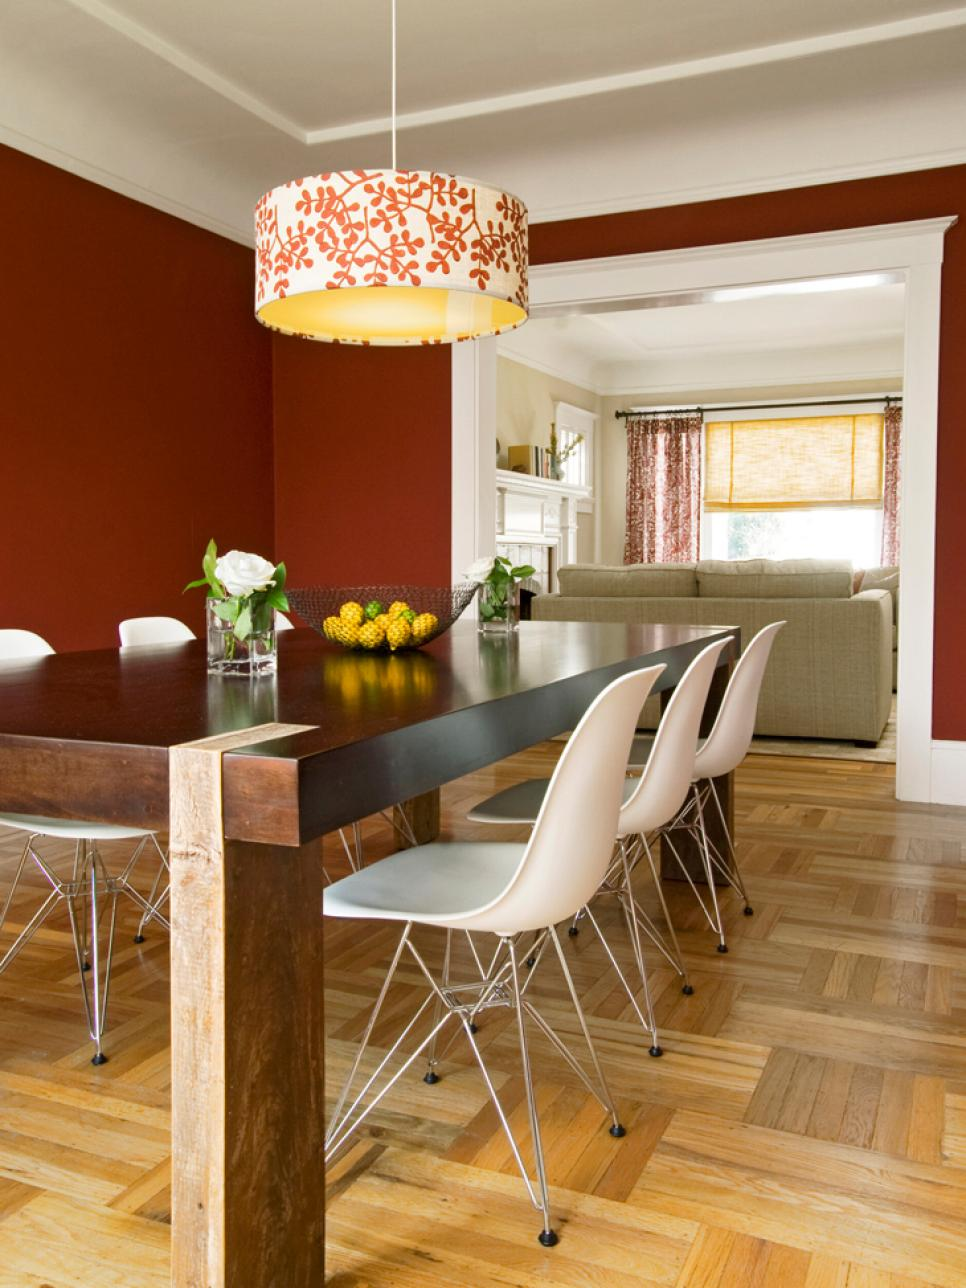 Decorating With Warm Rich Colors